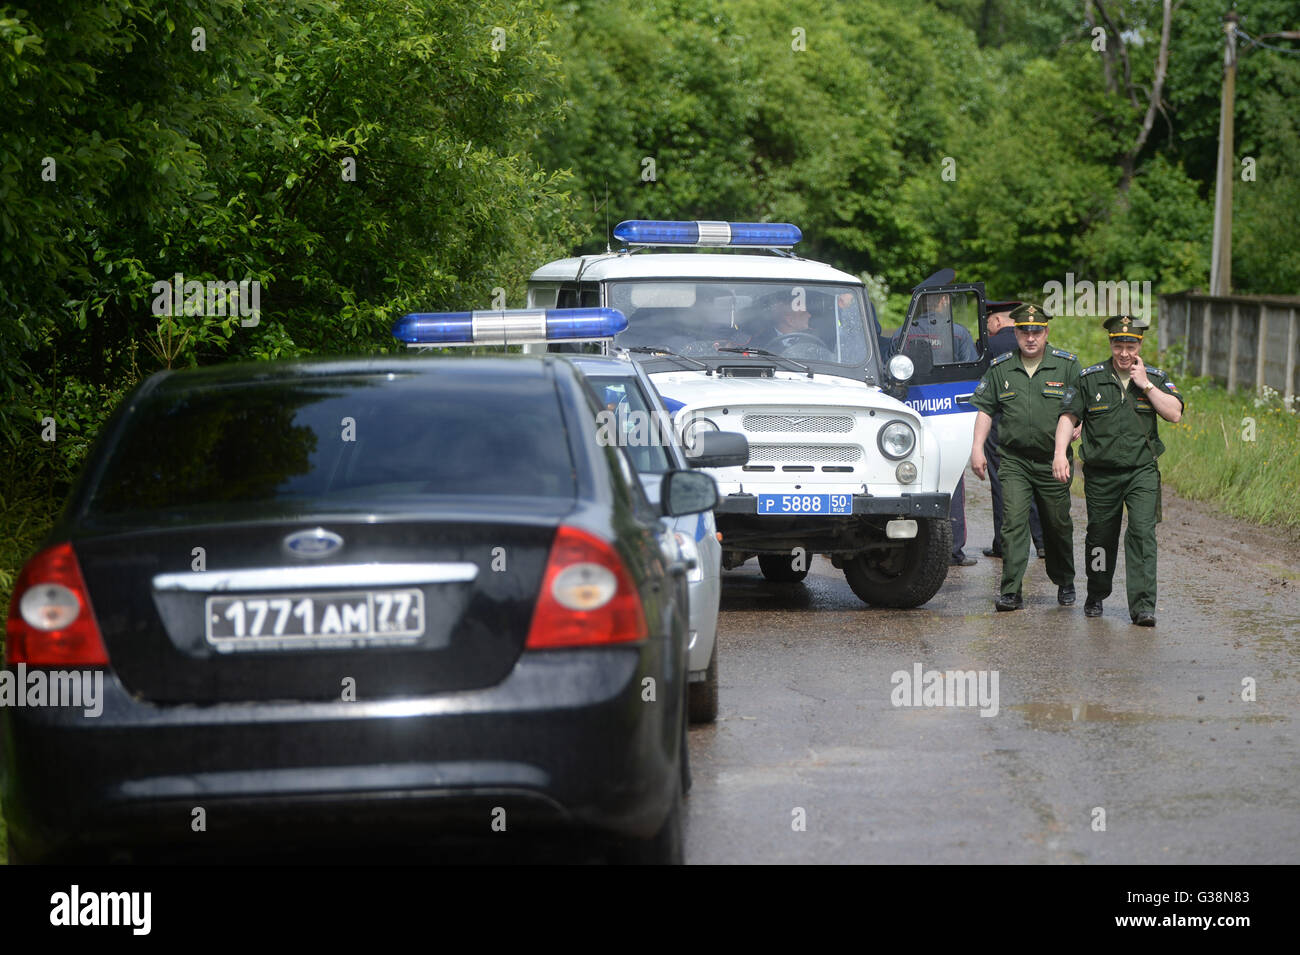 Moscow, Russia. 9th June, 2016. Police and military officers stand near the site of a military plane crash near Stock Photo